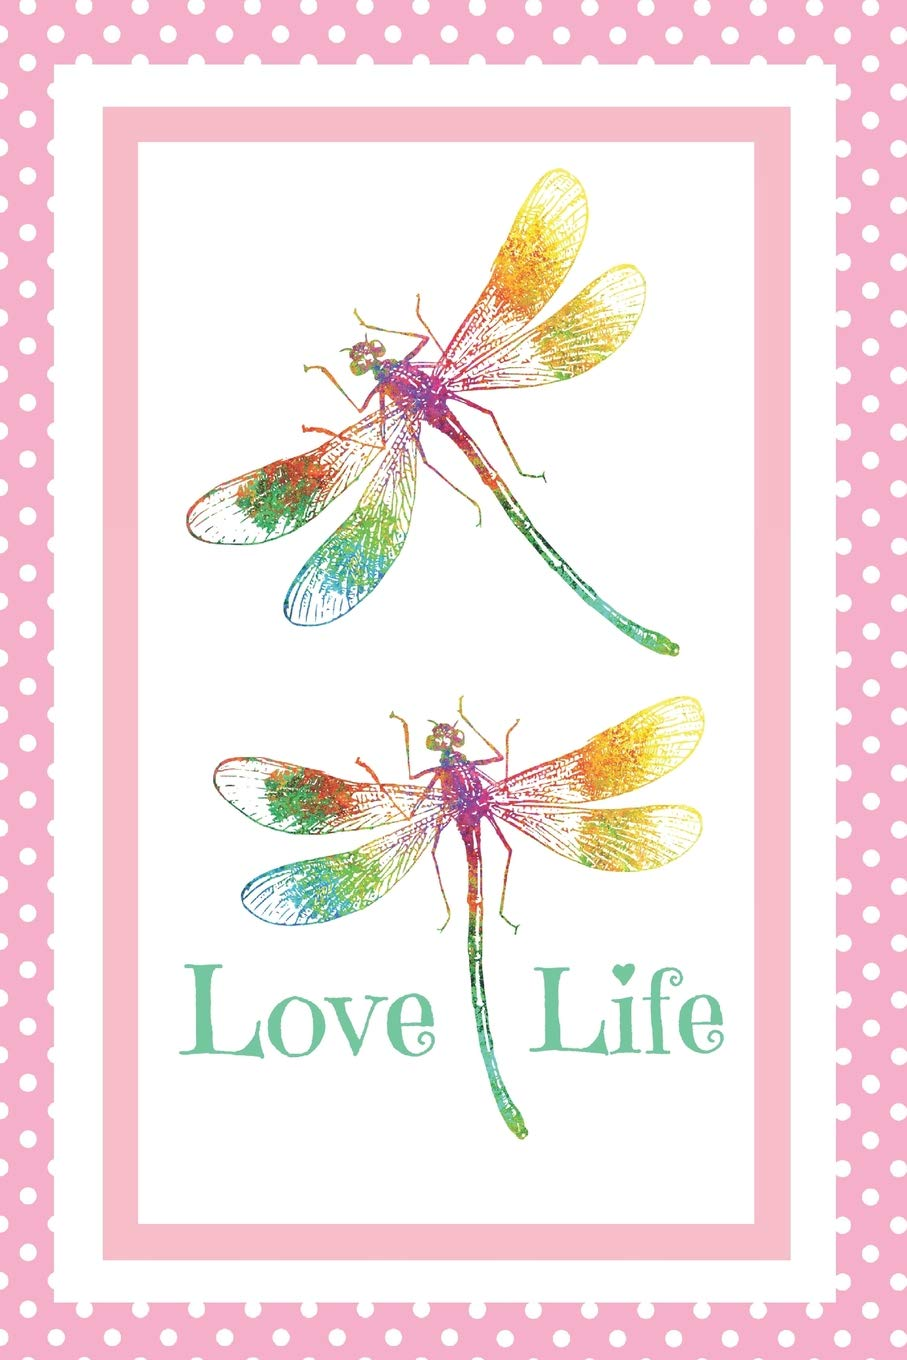 love life notebook journal 6x9 dragonfly on pink polka dot background love life burnside notebooks 9781072920434 amazon com books amazon com